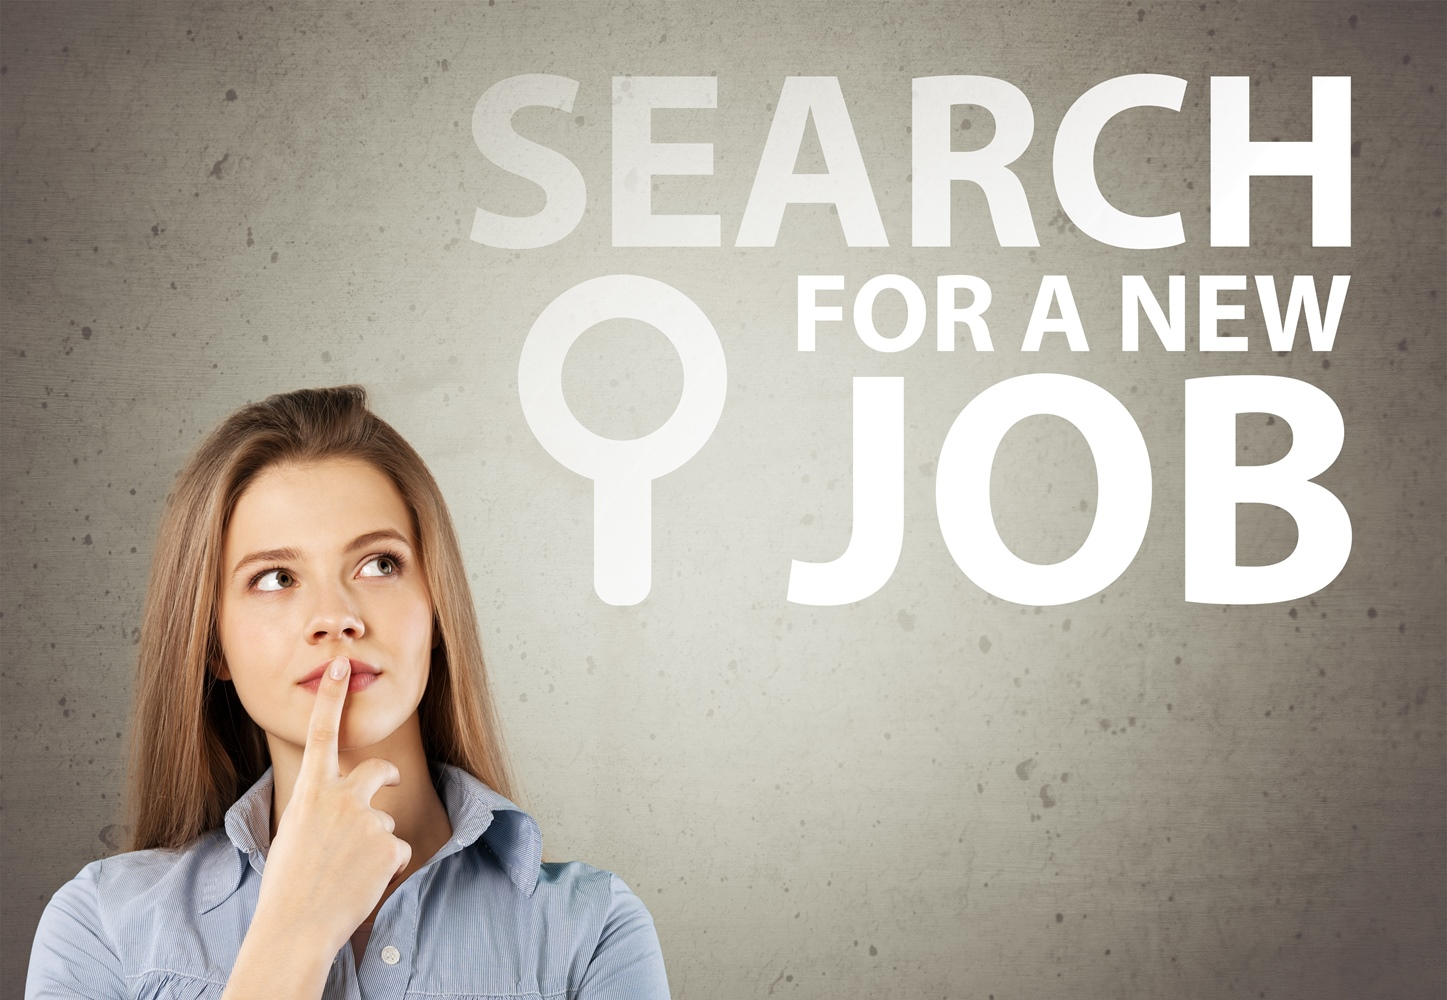 search for new job